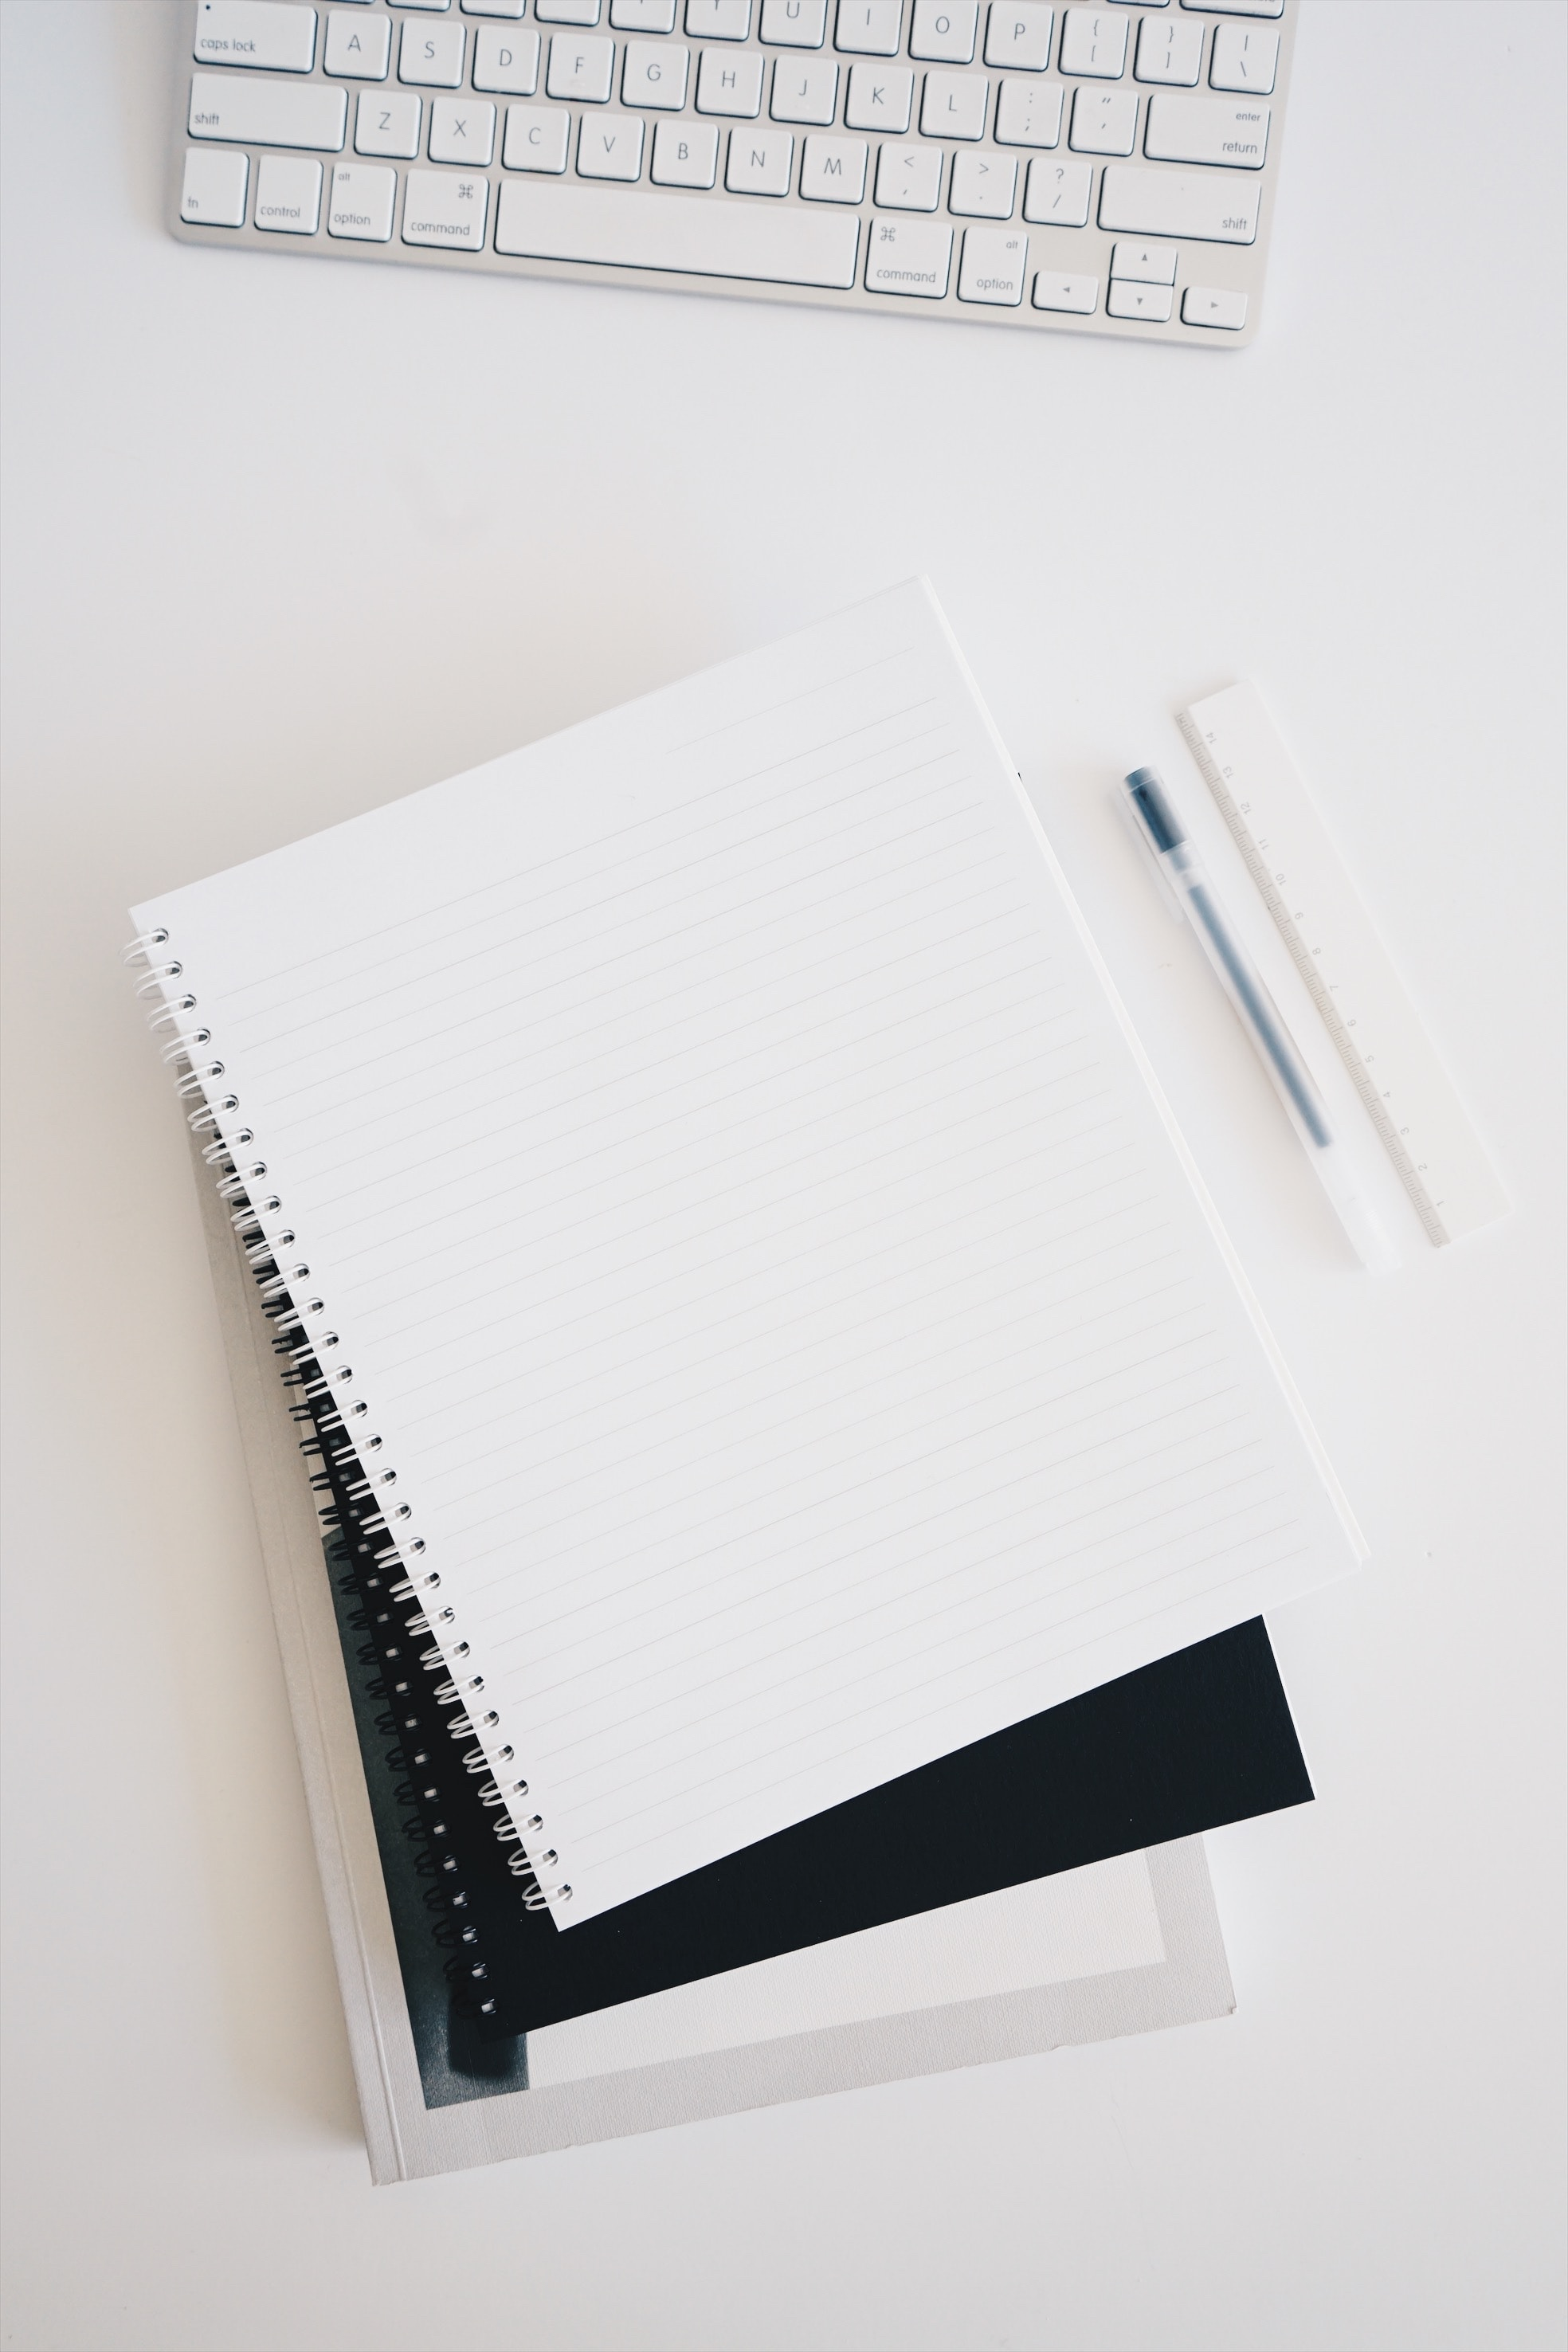 On a white work top is a white keyboard at the top of the picture. There is 3 notebooks, the notebook on the top is open with white lined pages. Next to the notebooks is a black pen and a white ruler.